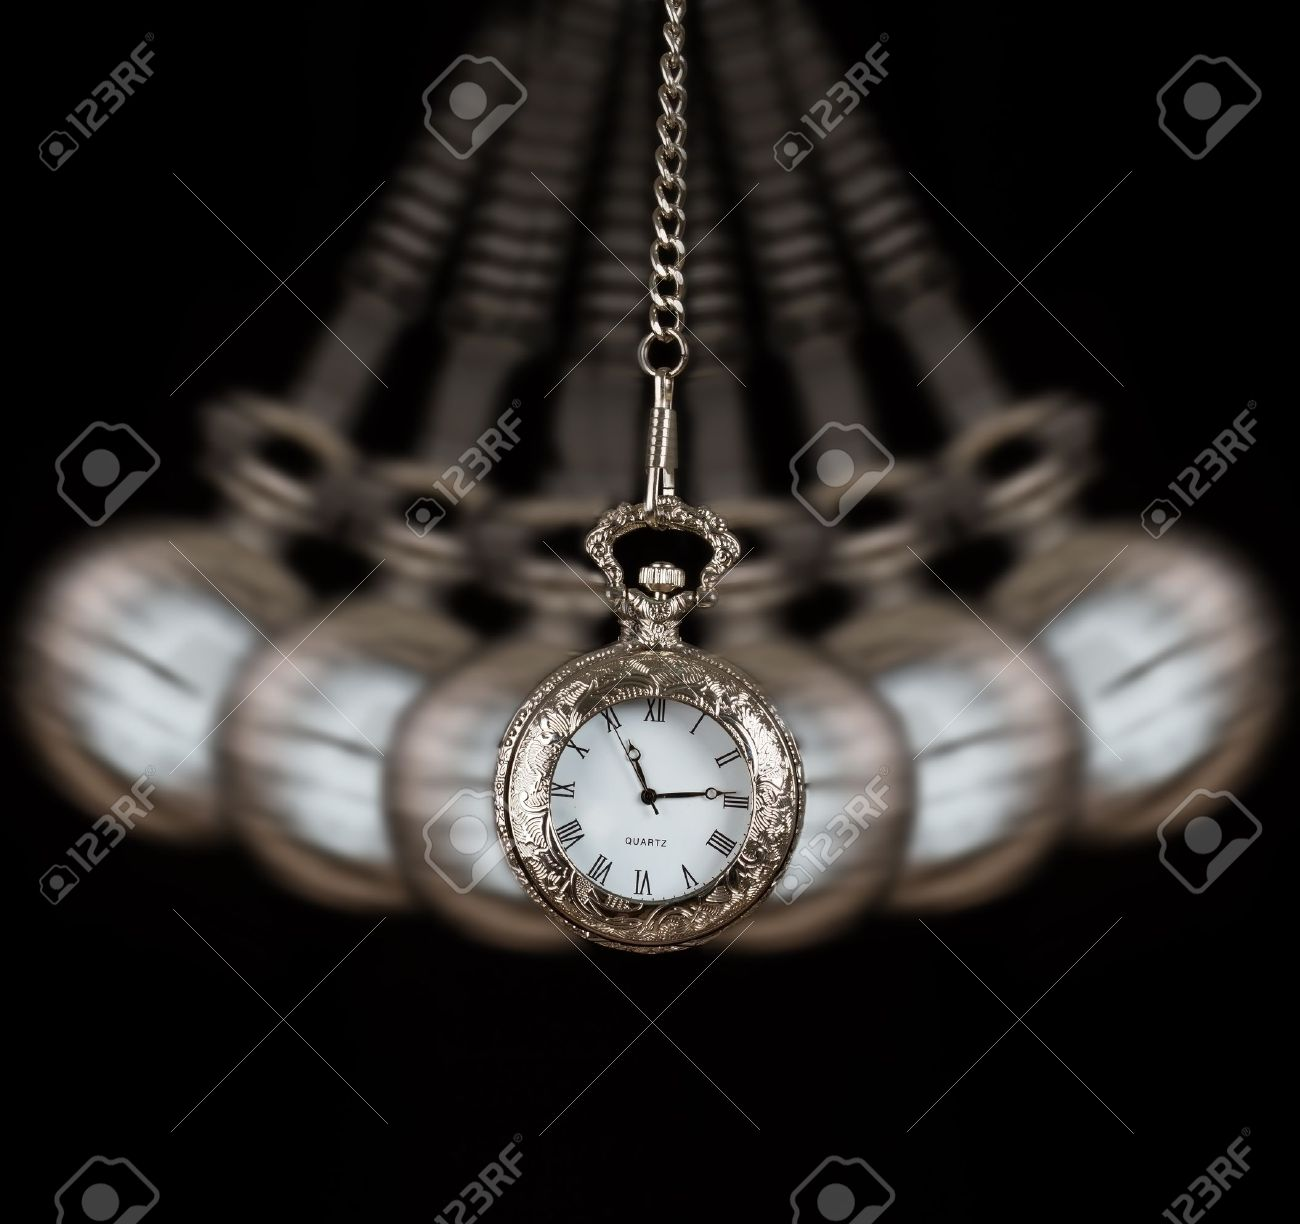 Pocket watch silver swinging on a chain black background to hypnotise Stock Photo - 21710015